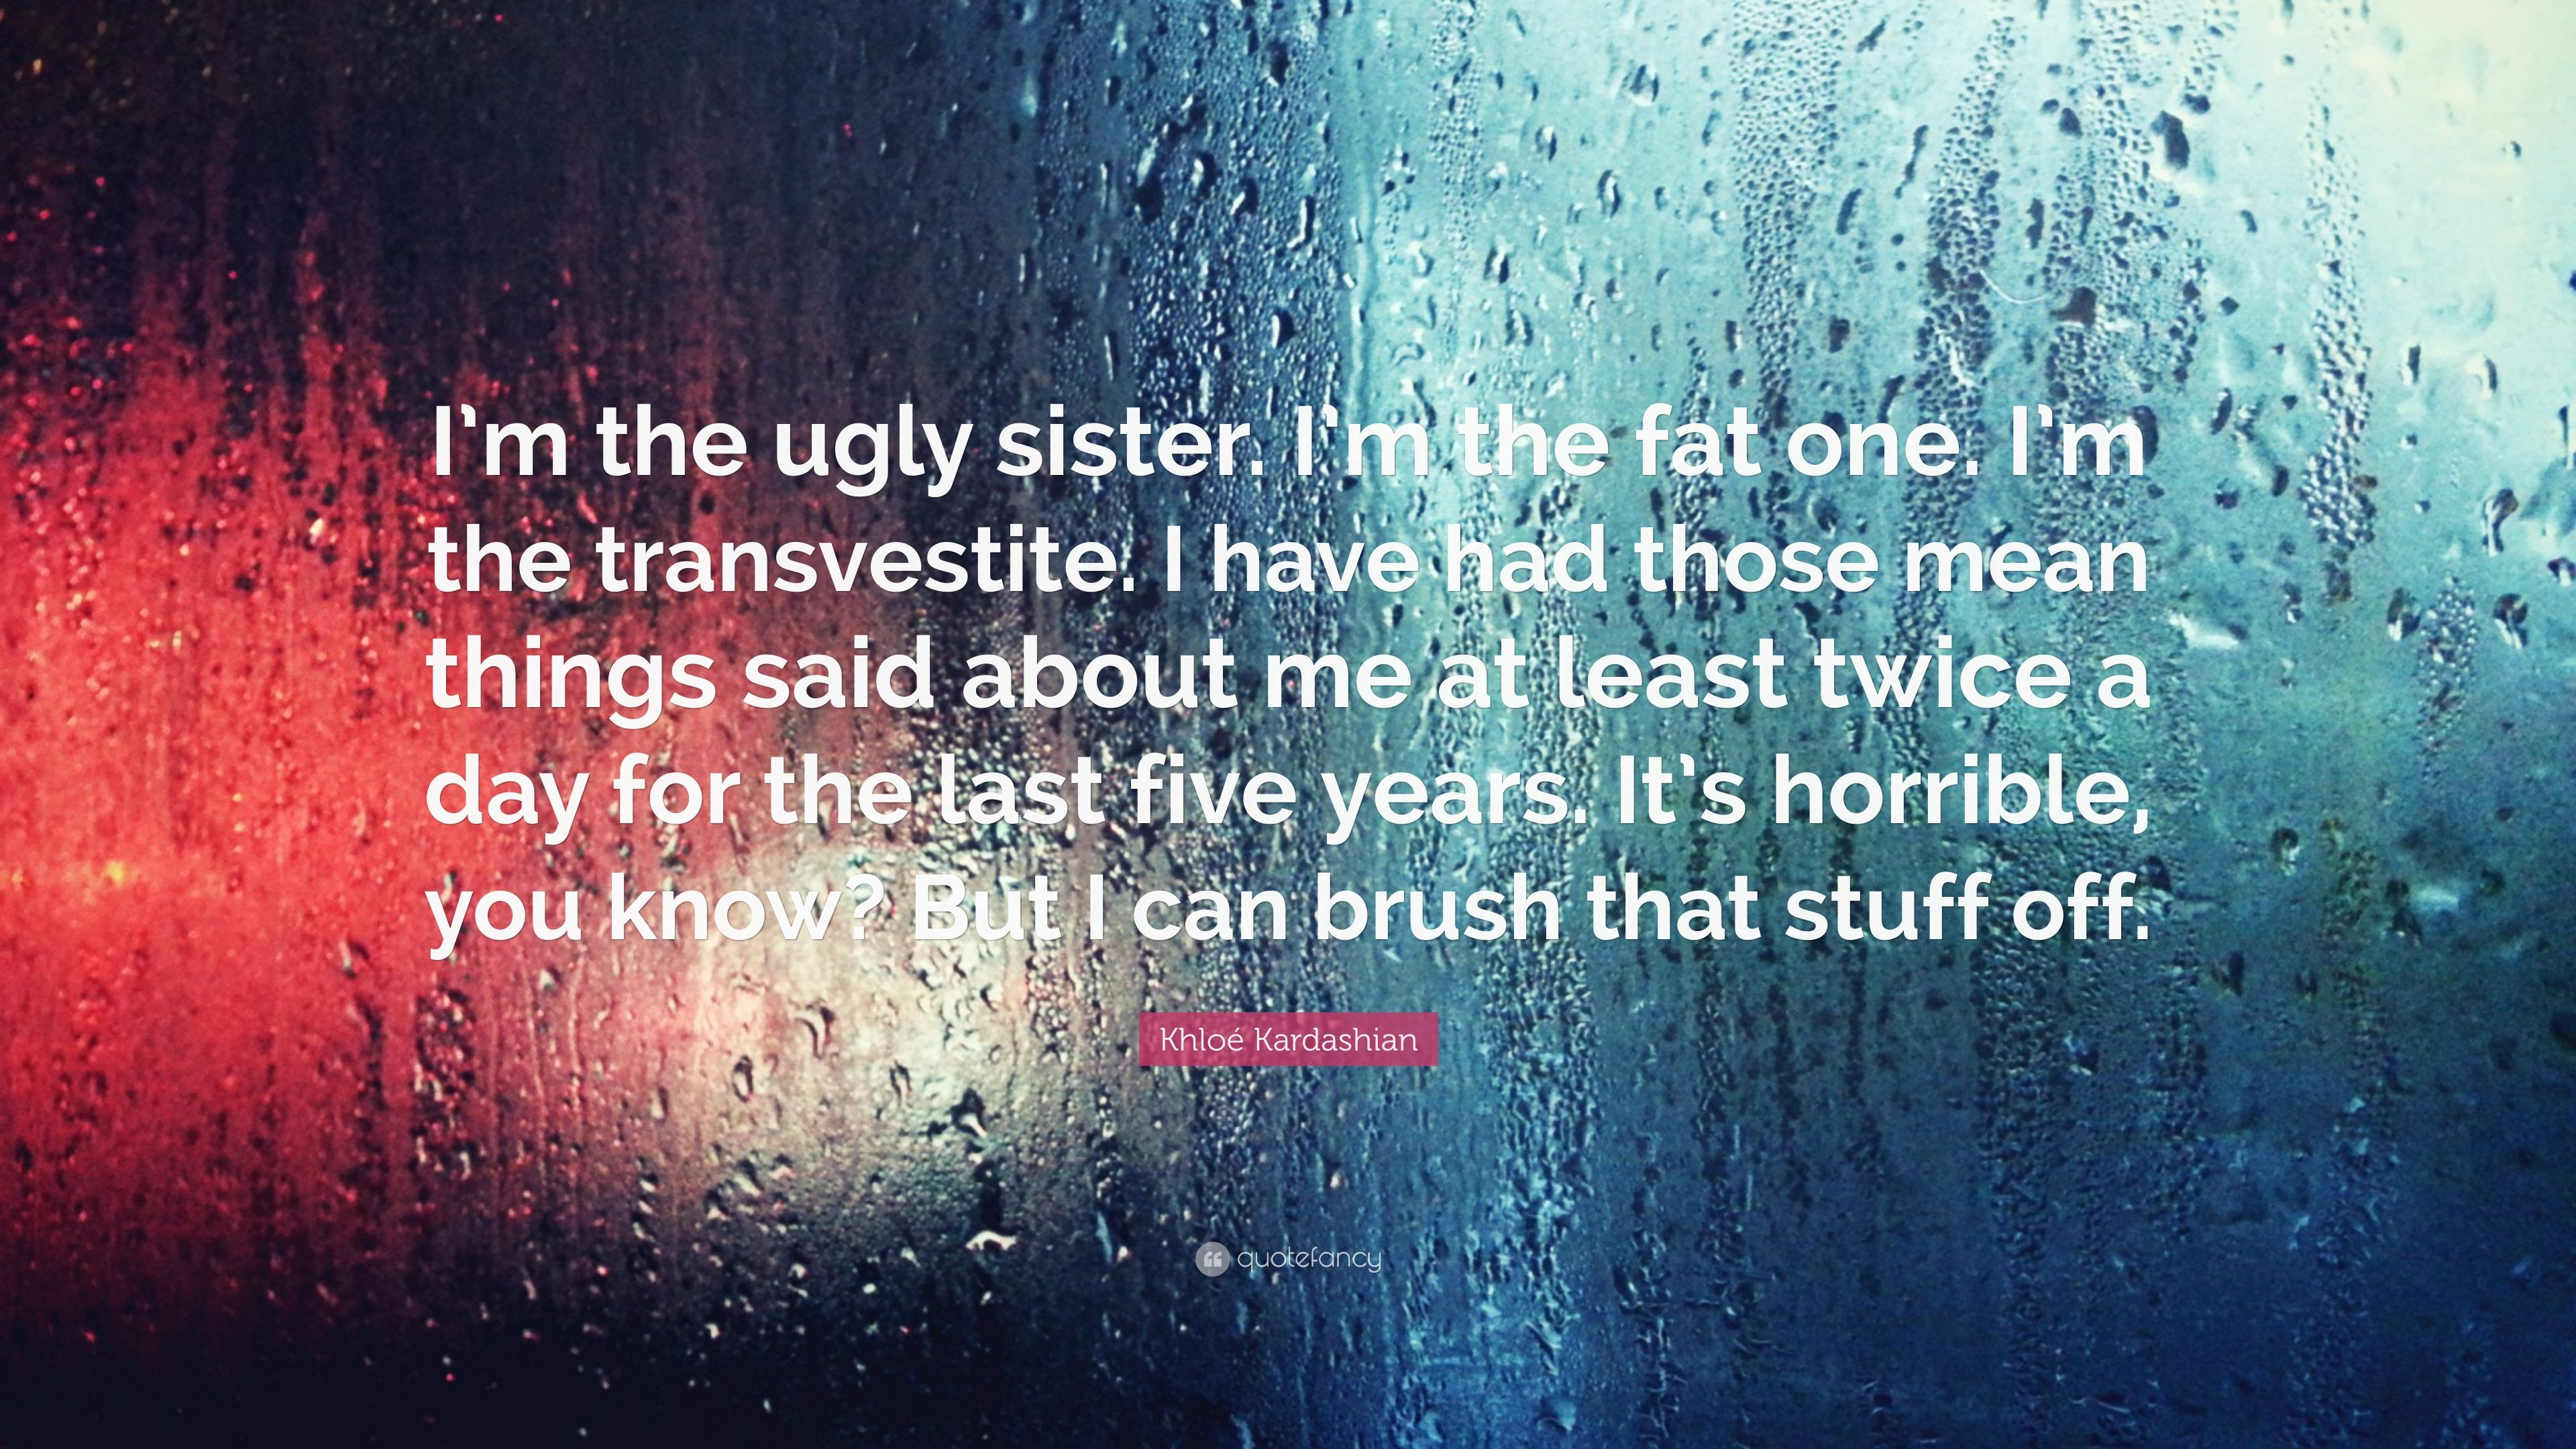 Khloe Kardashian Quote I M The Ugly Sister I M The Fat One I M The Transvestite I Have Had Those Mean Things Said About Me At Least Twice A 7 Wallpapers Quotefancy